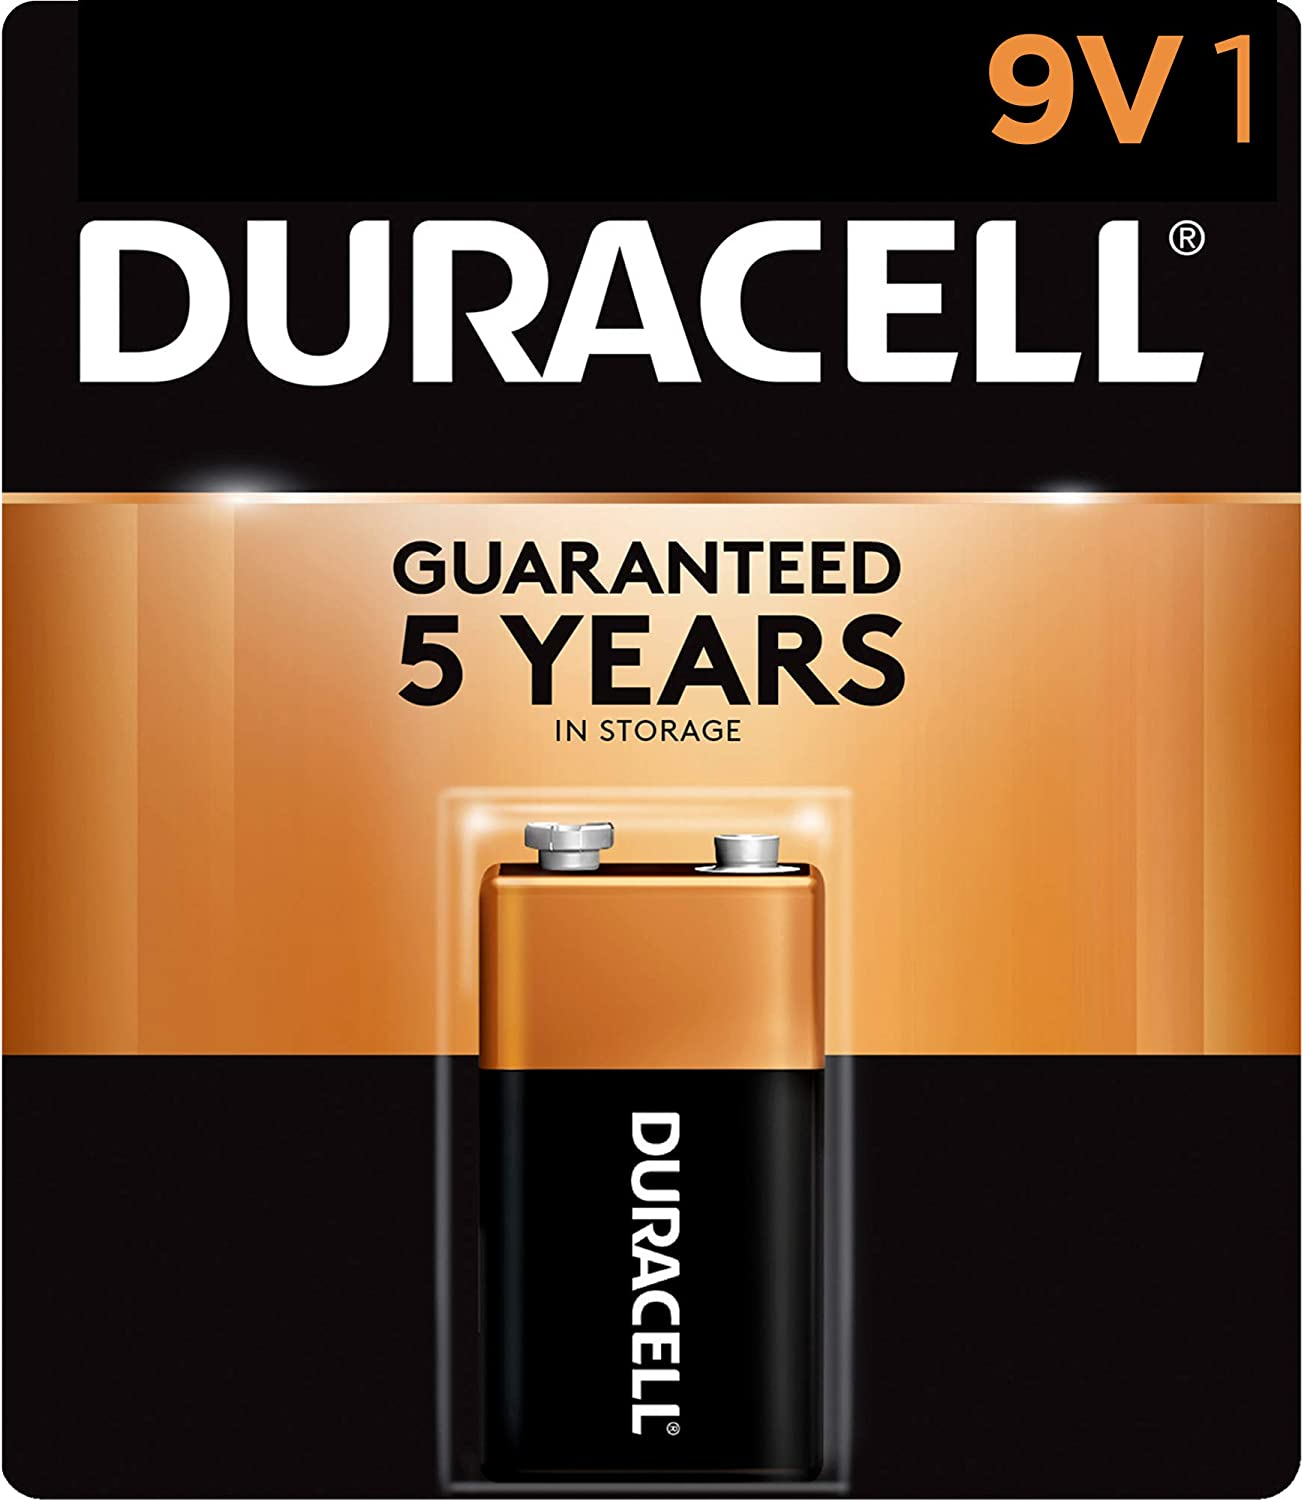 Amazon Com Duracell Coppertop 9v Alkaline Batteries Long Lasting All Purpose 9 Volt Battery For Household And Business 1 Count Health Personal Care